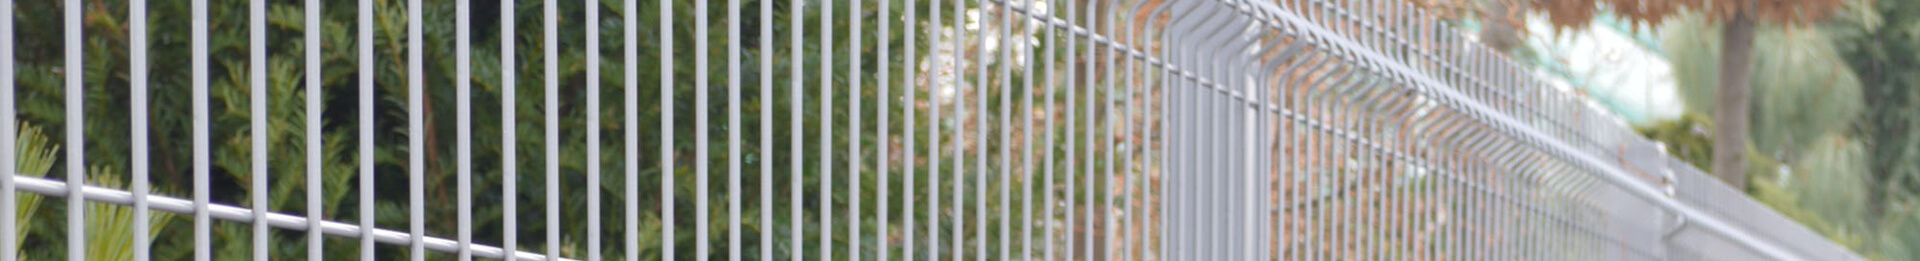 Wire fencing and fence panels